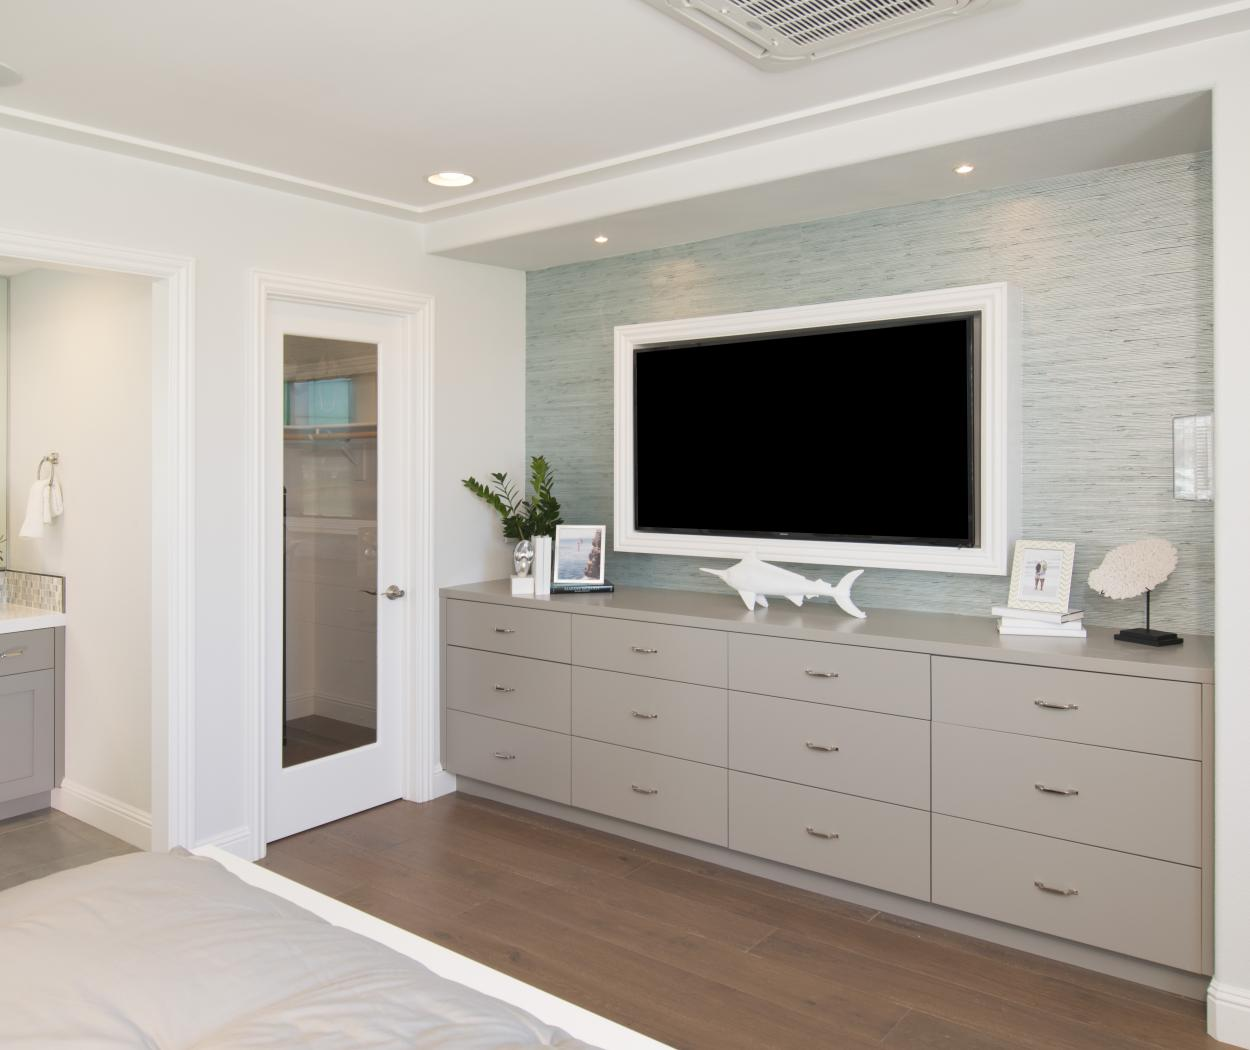 Beautiful Master Bedroom with Painted Beige Cabinets and White TV Frame